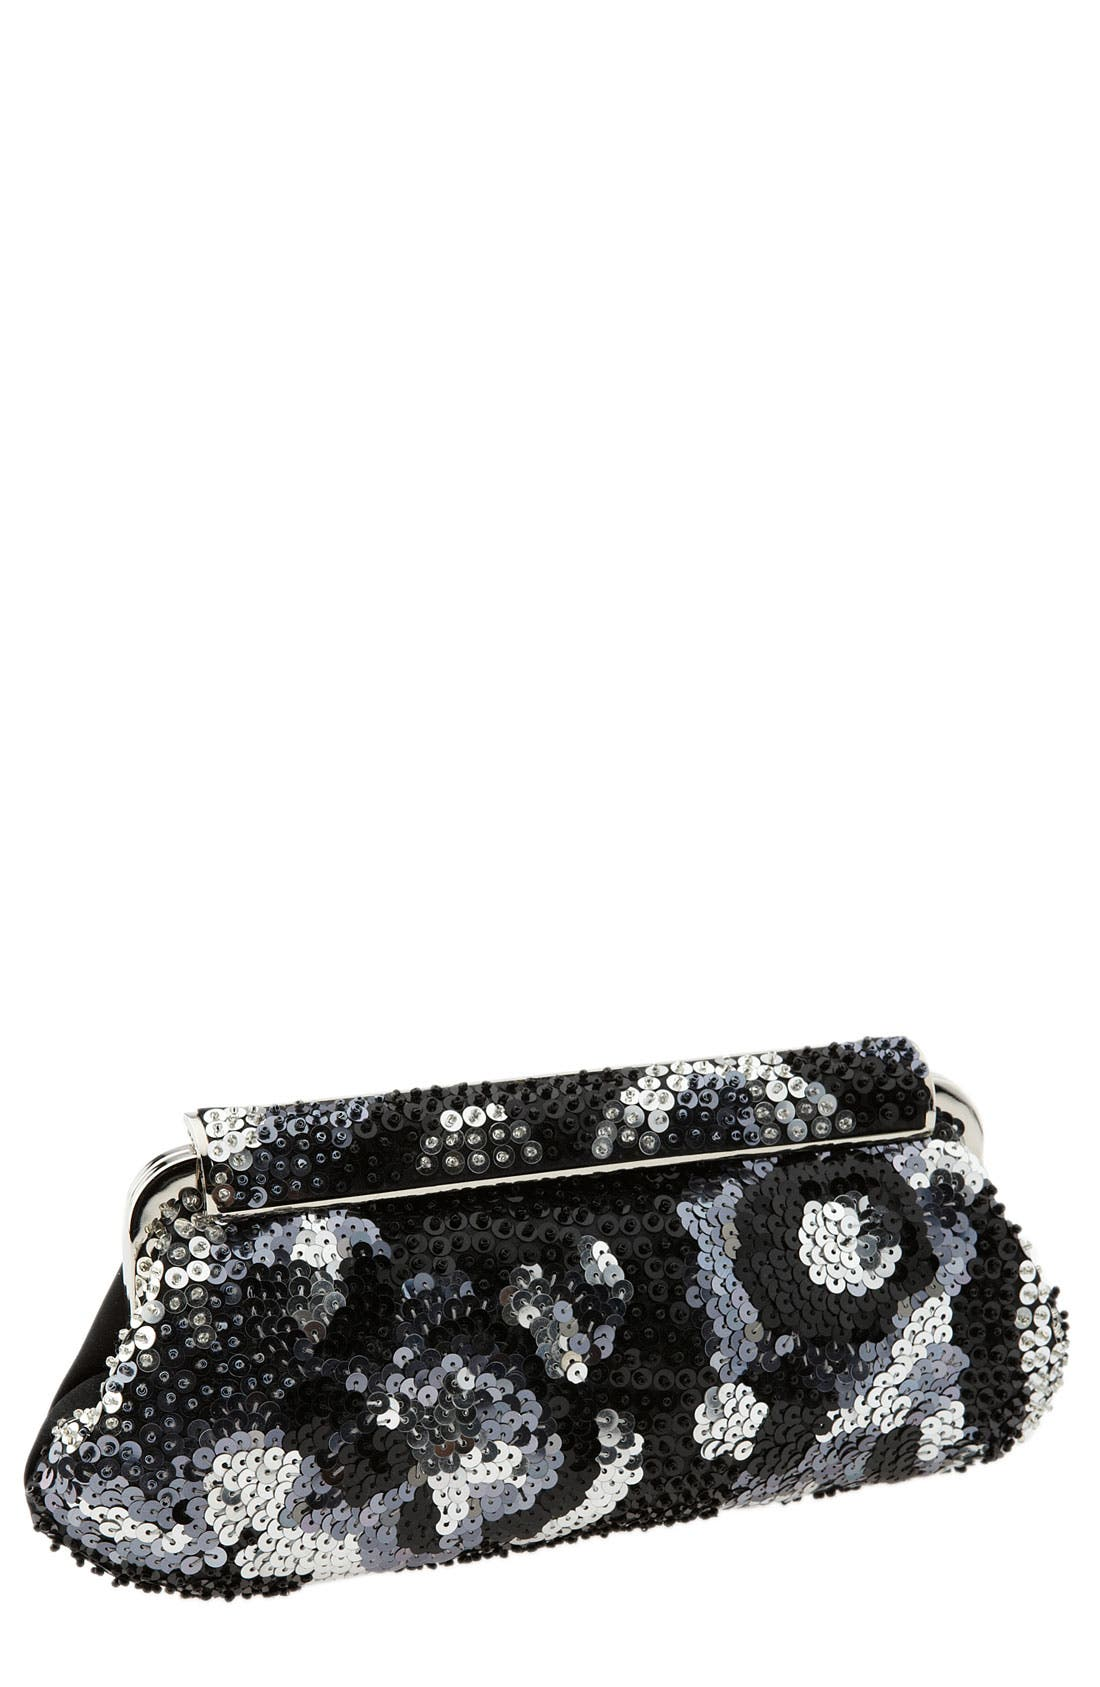 Alternate Image 1 Selected - Jessica McClintock Patterned Sequin Clutch